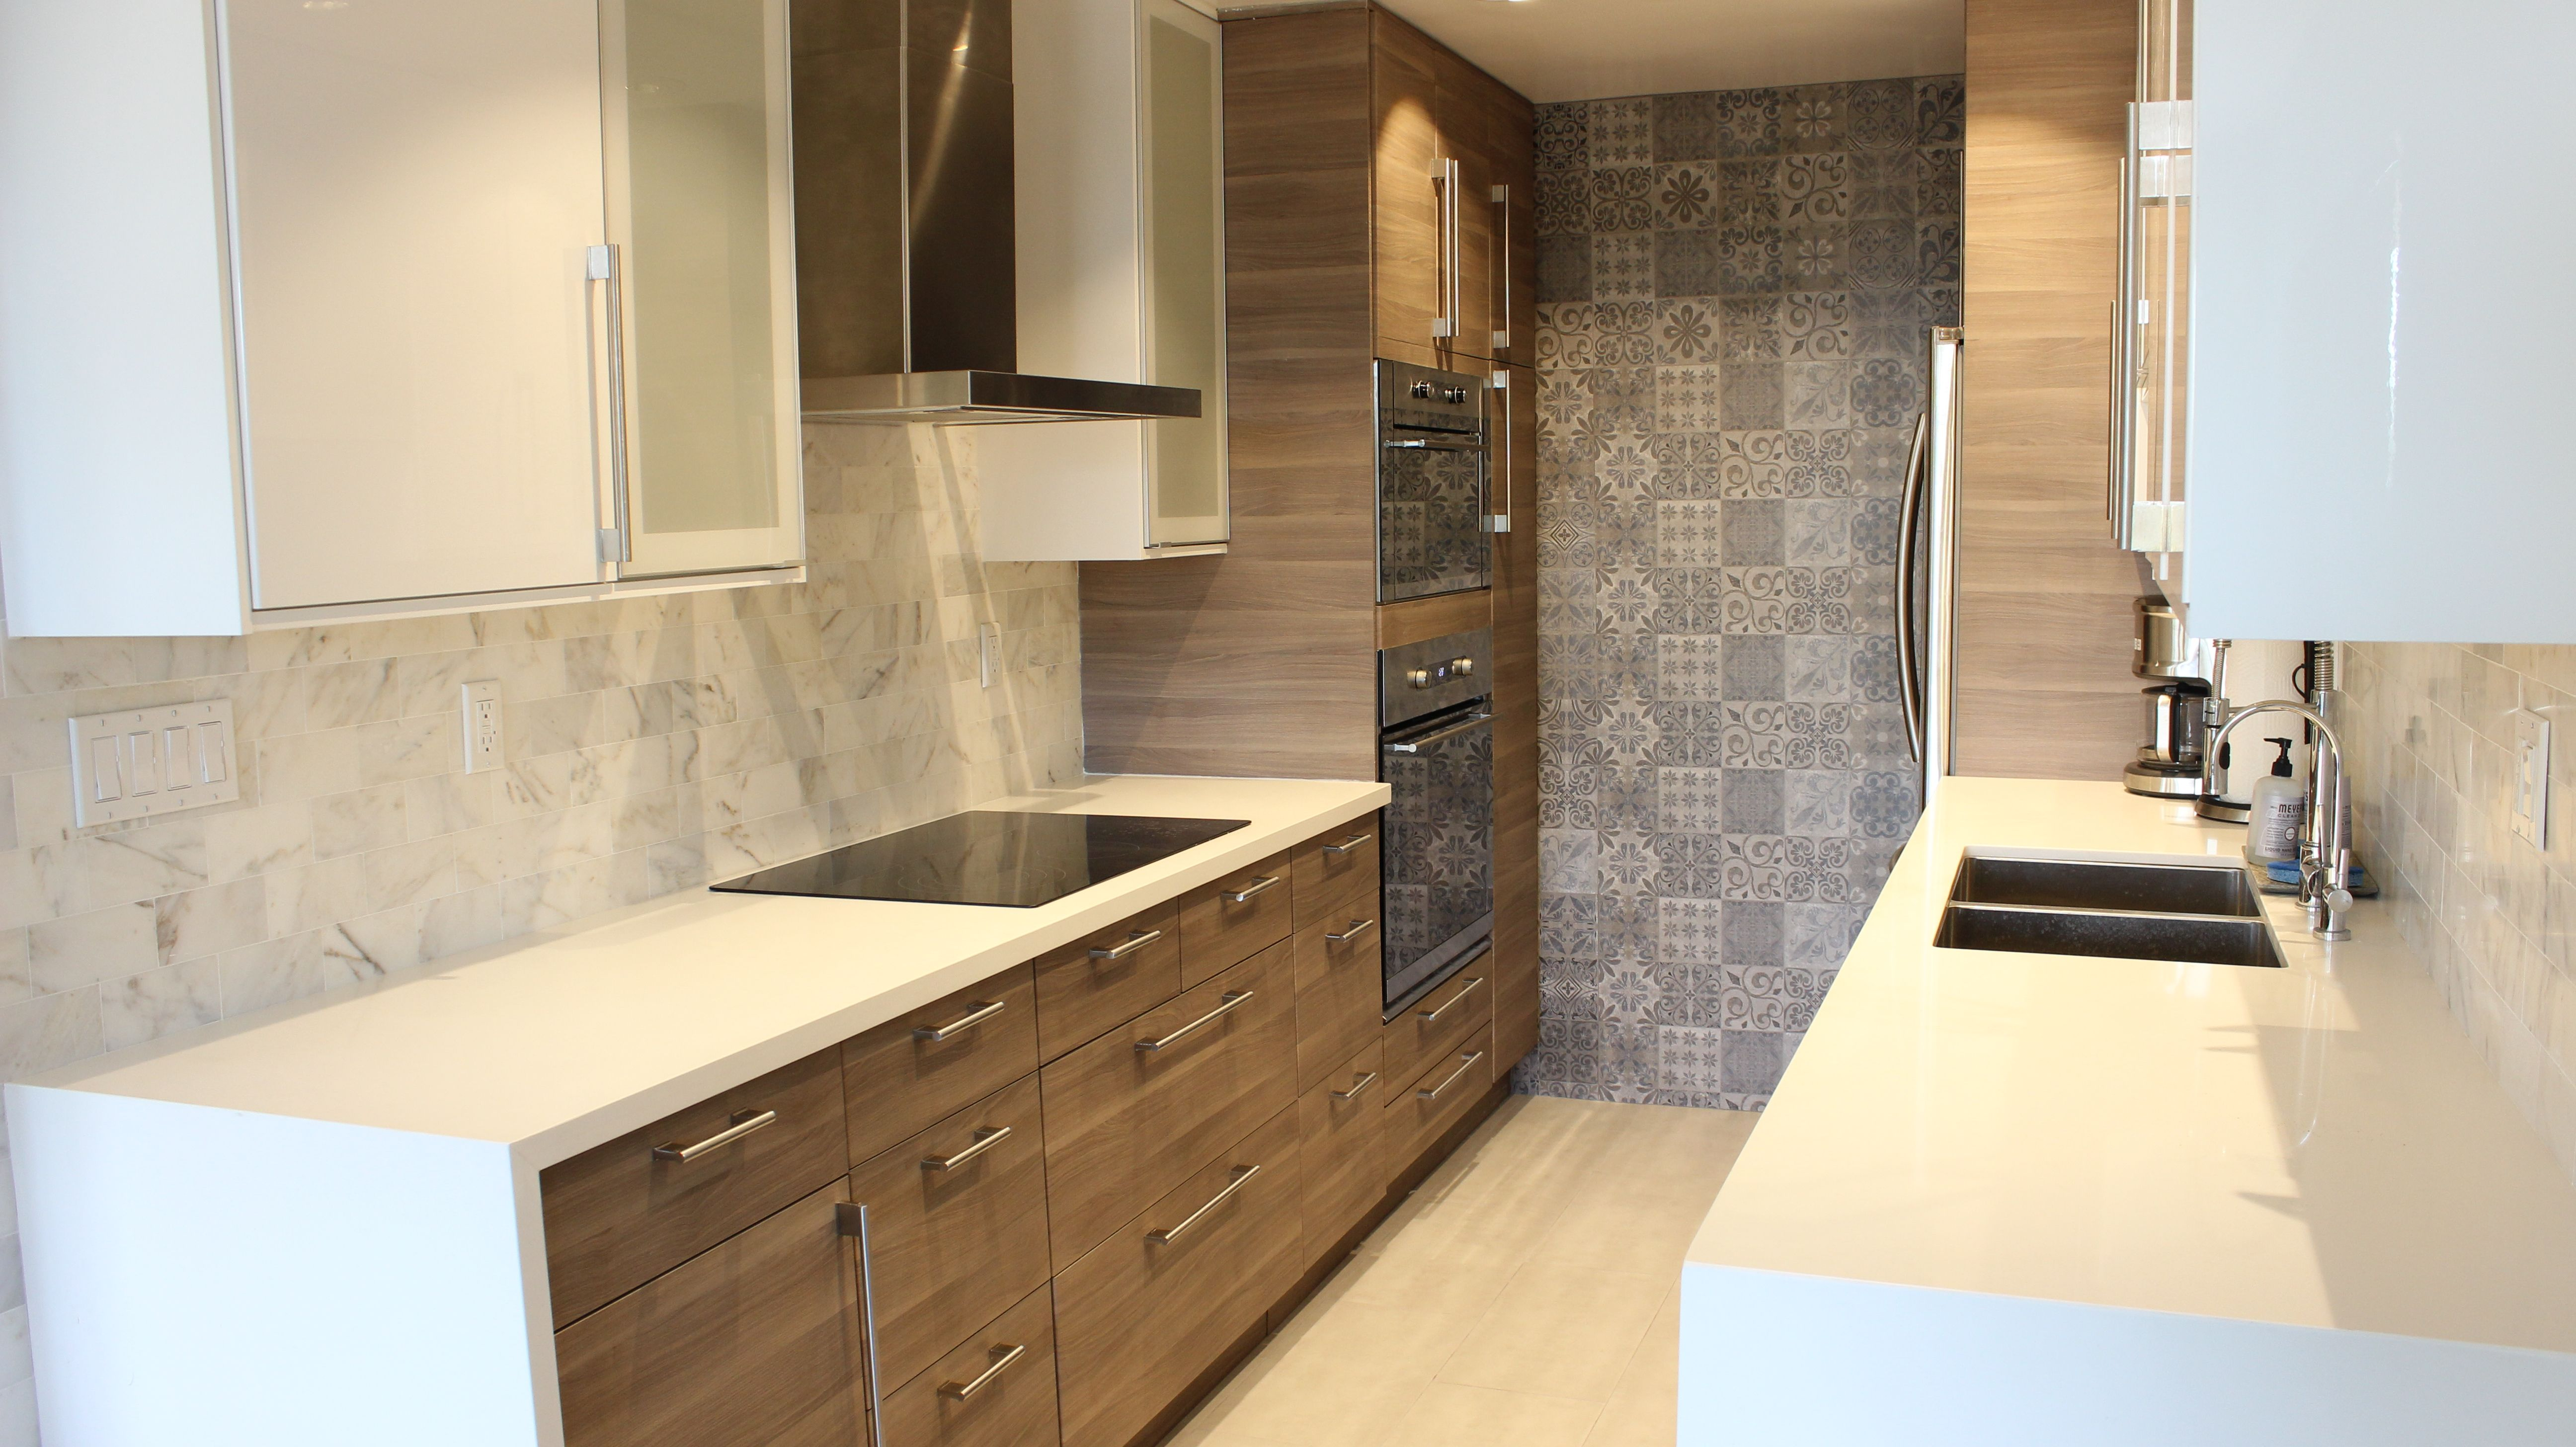 High Gloss White Kitchen Cabinets For The Uppers With Flat Panel Walnut Gray Base Cabinets Featu Simple Kitchen Remodel Kitchen Remodel Design Kitchen Remodel